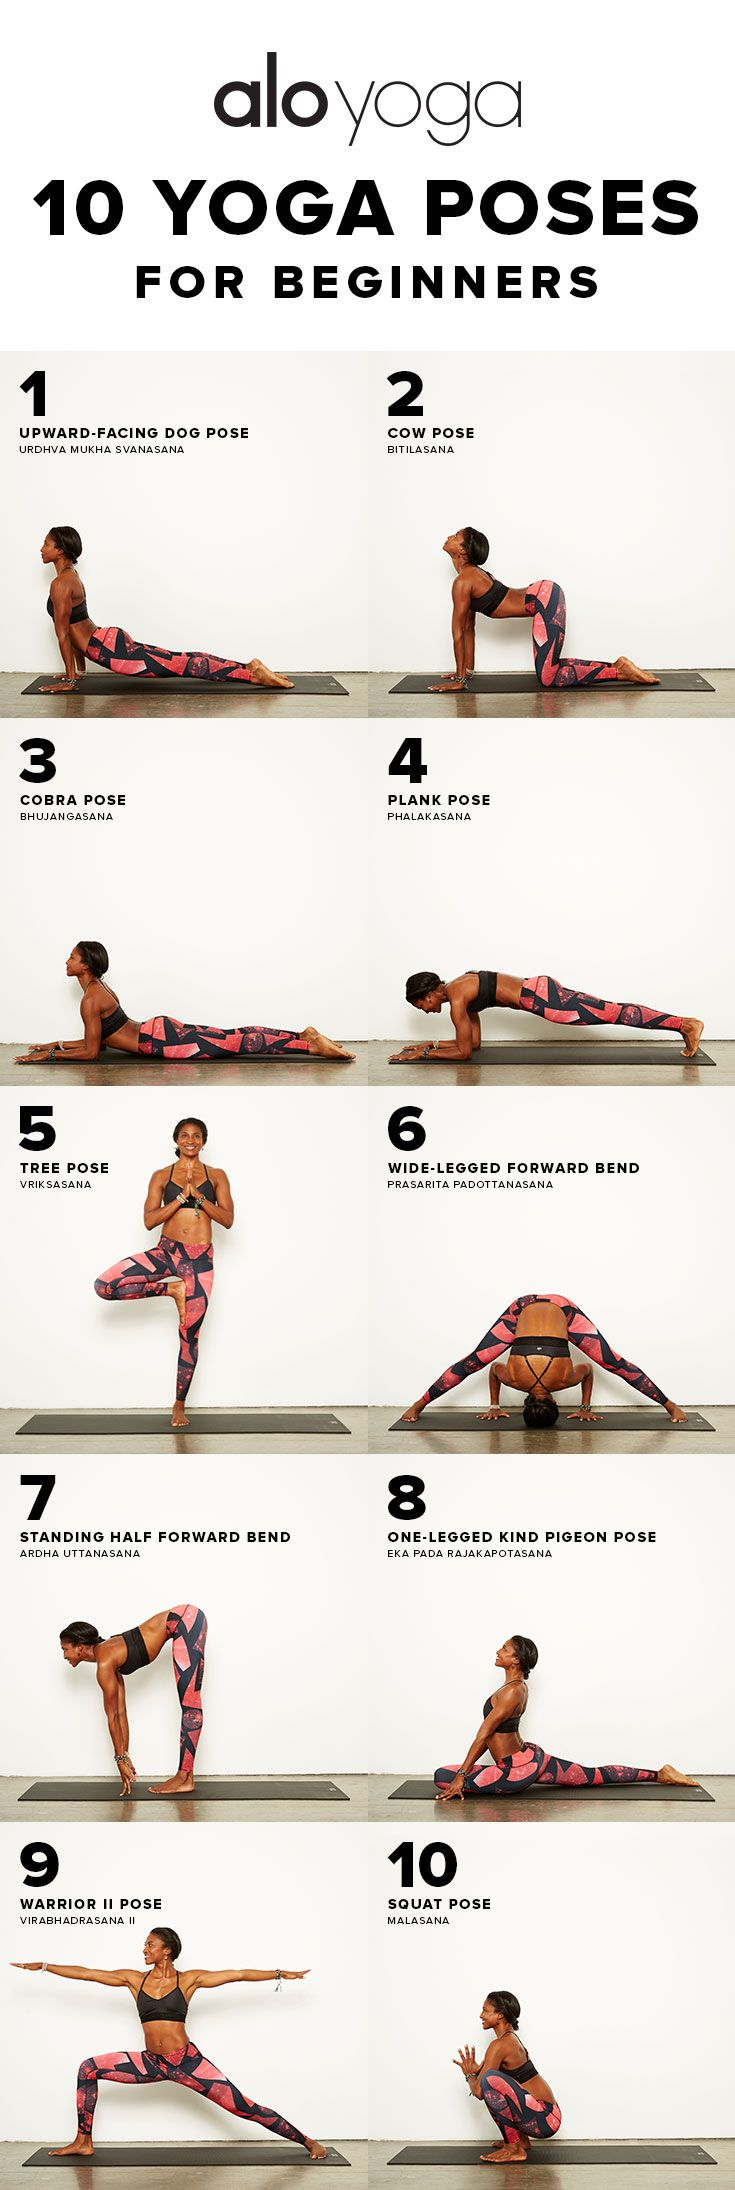 10 Yoga Poses For Beginners #yoga #yogasequence #sequence #inspiration http://www.aloyoga.com